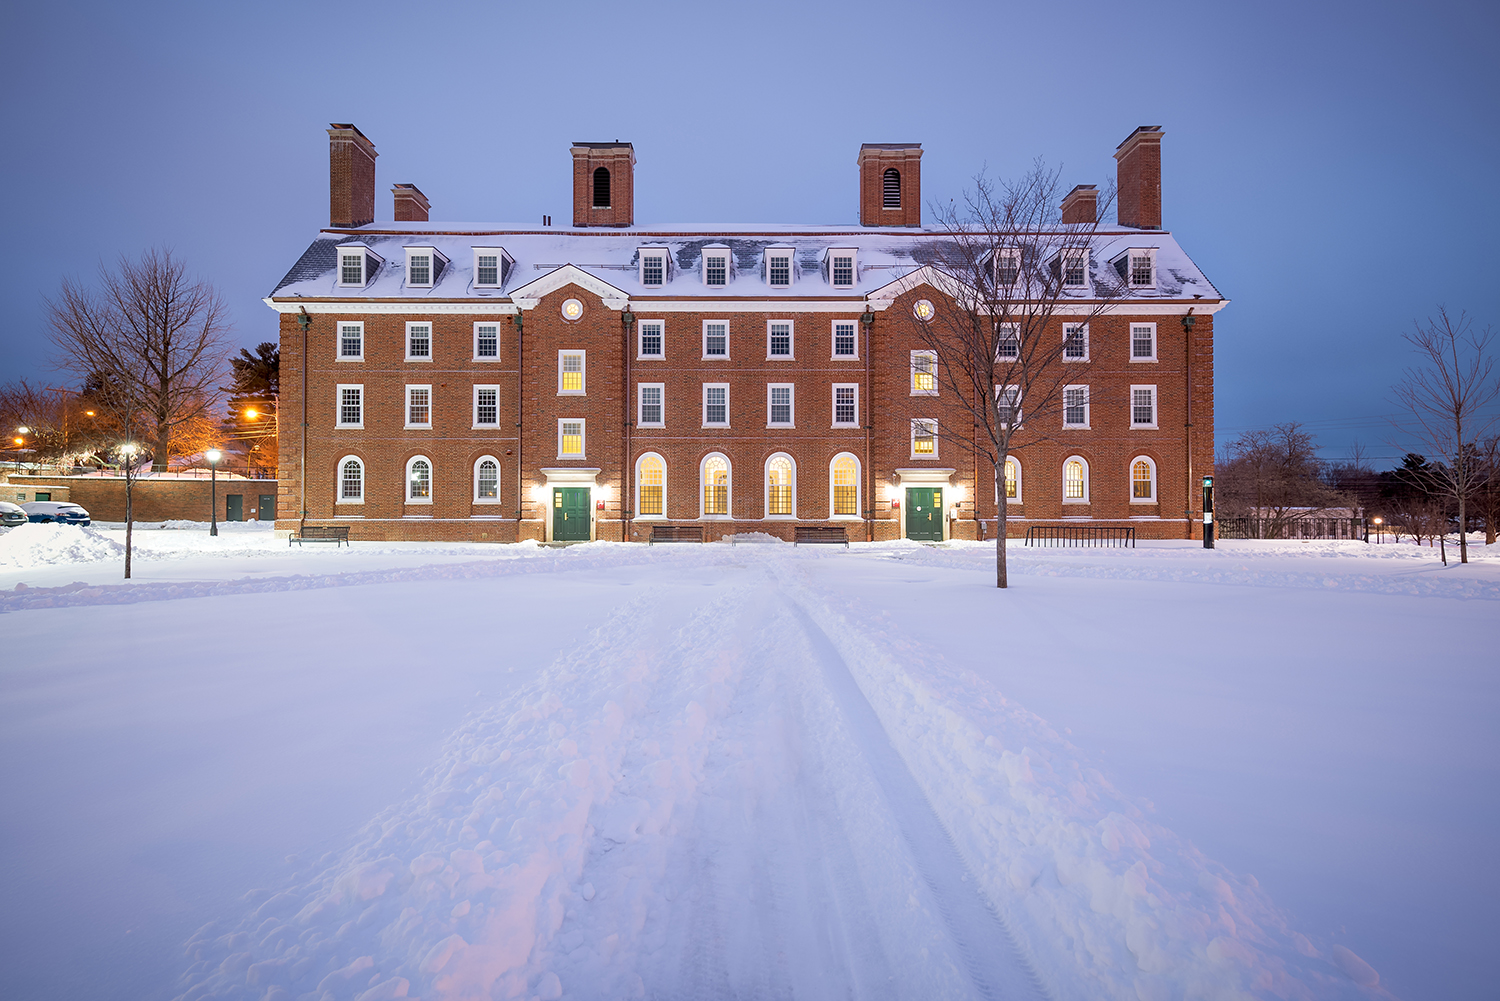 Wheelwright Hall, Exeter, NH